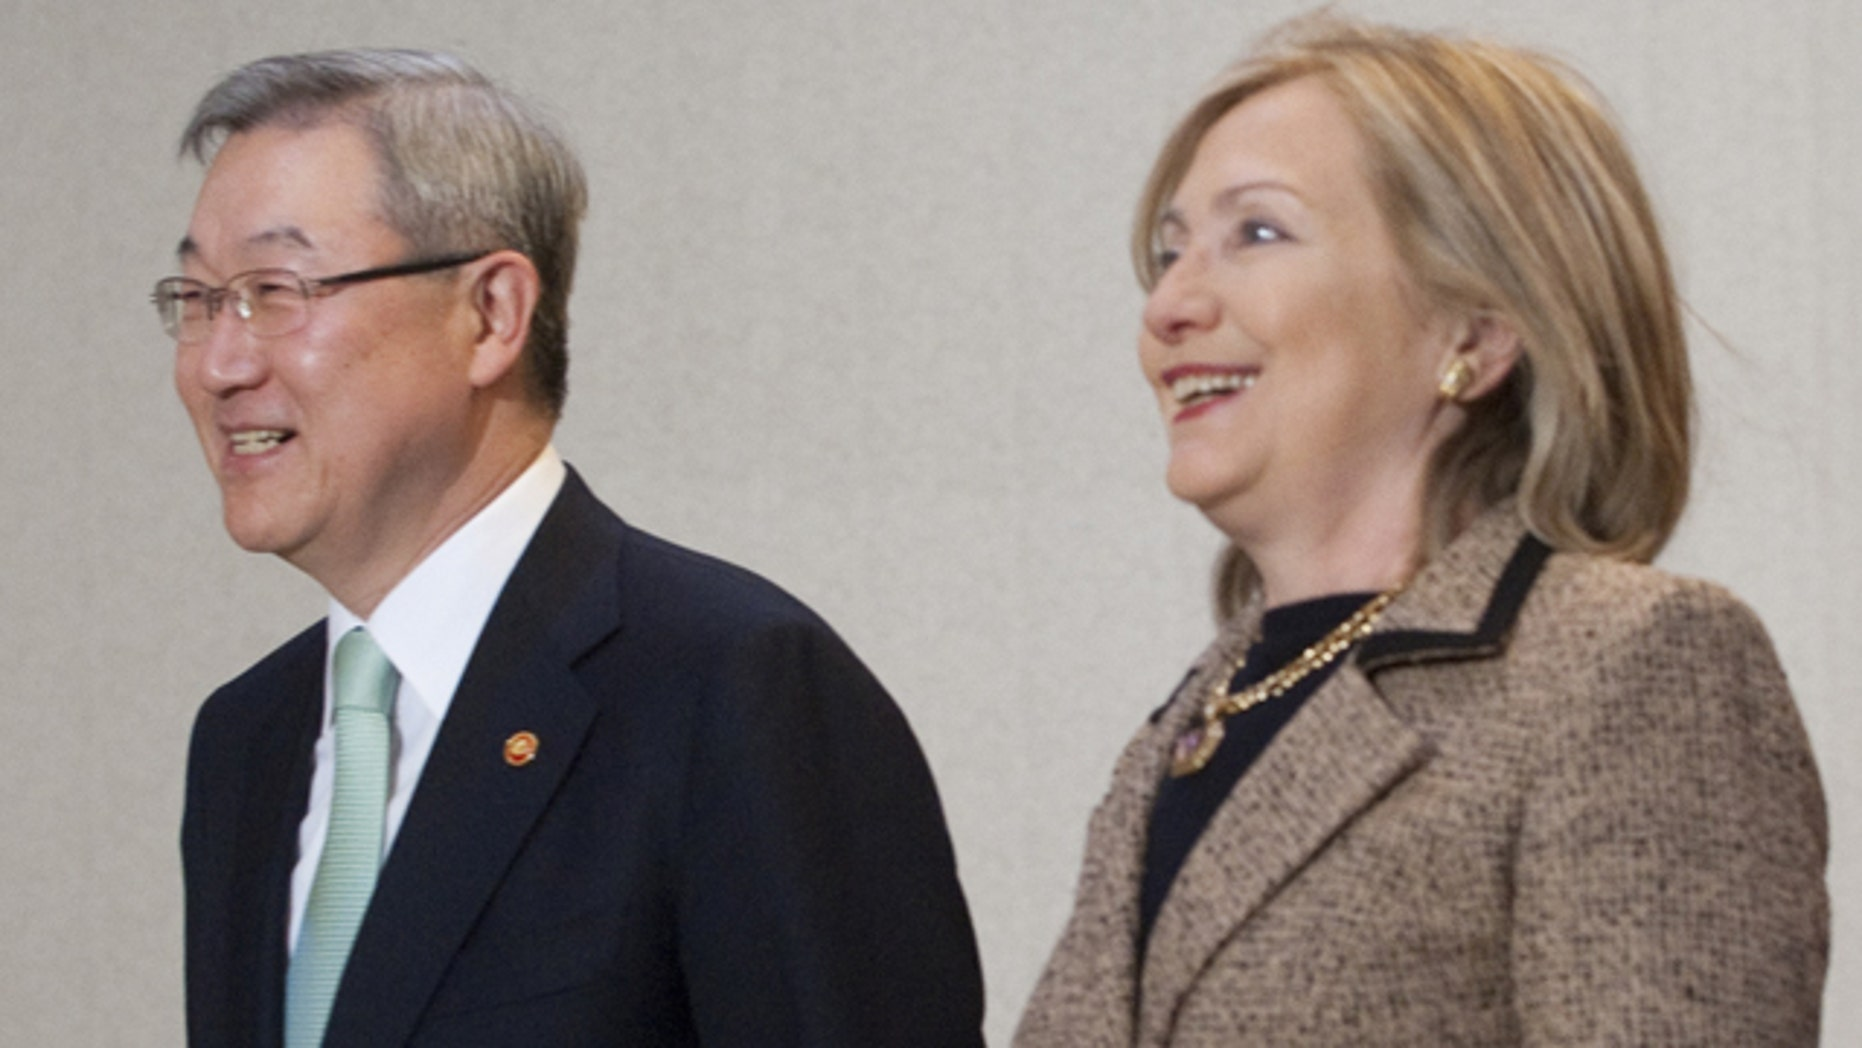 April 16: South Korean Foreign Minister Kim Sung-Hwan, left, walks together with U.S. Secretary of State Hillary Rodham Clinton to a meeting room at the Foreign Minister's Residence in Seoul, South Korea.